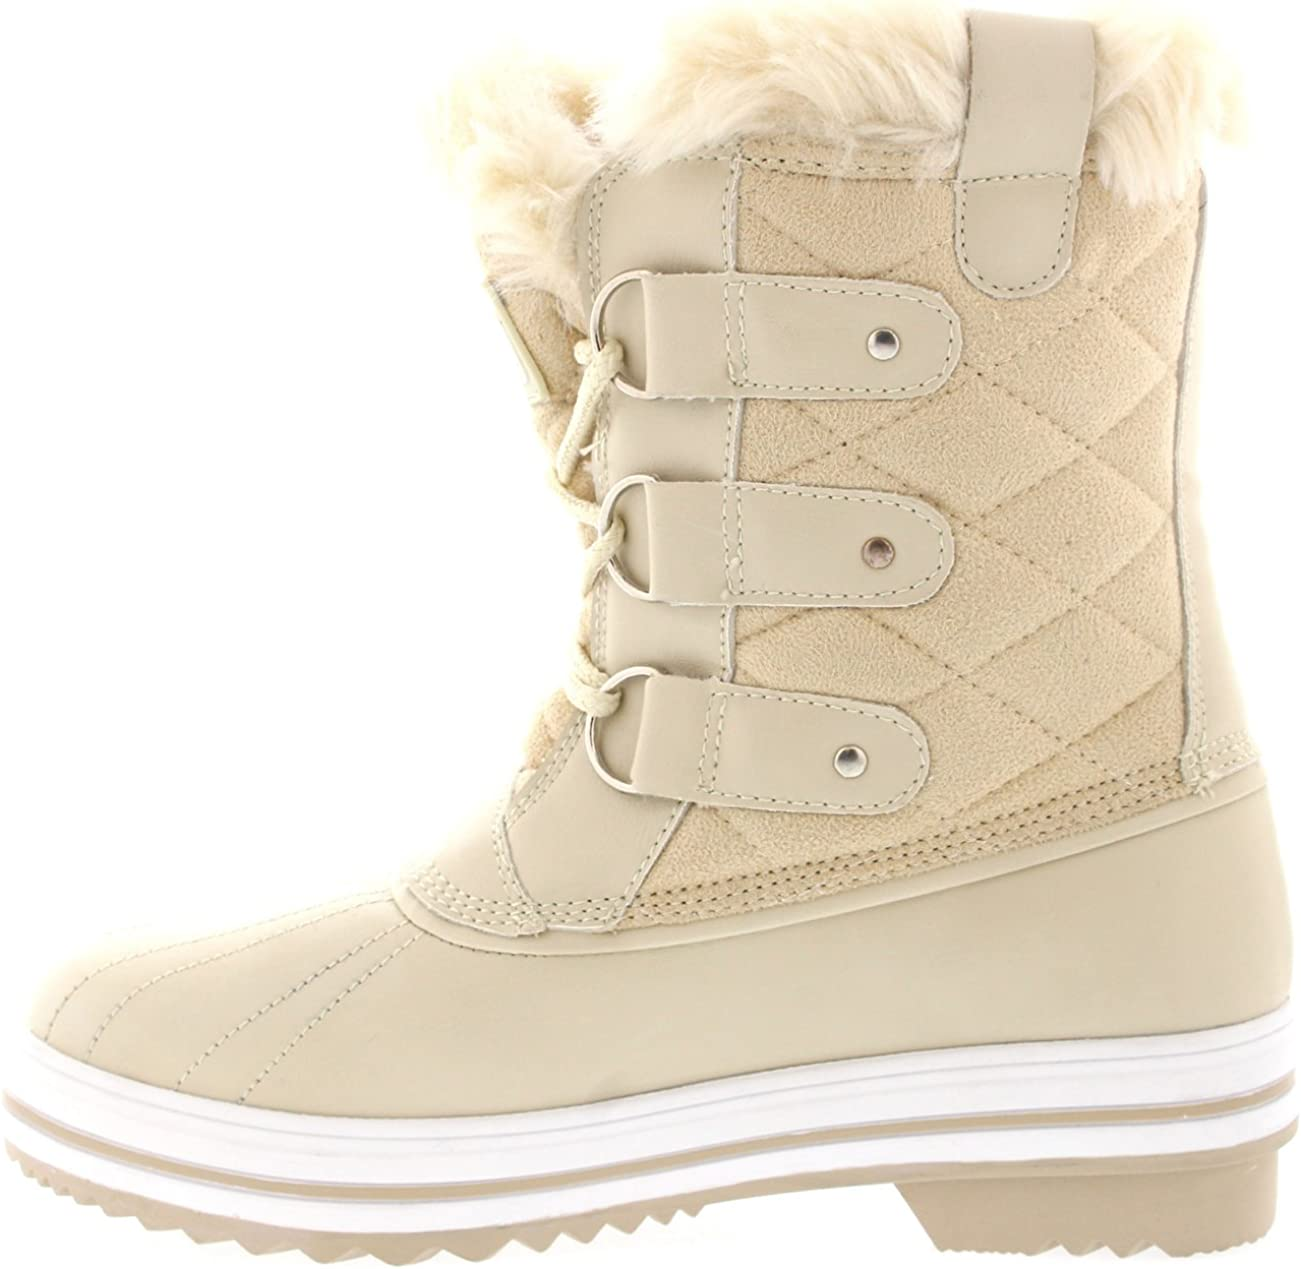 POLAR Womens Snow Boot Quilted Short Winter Snow Rain Warm Waterproof Boots